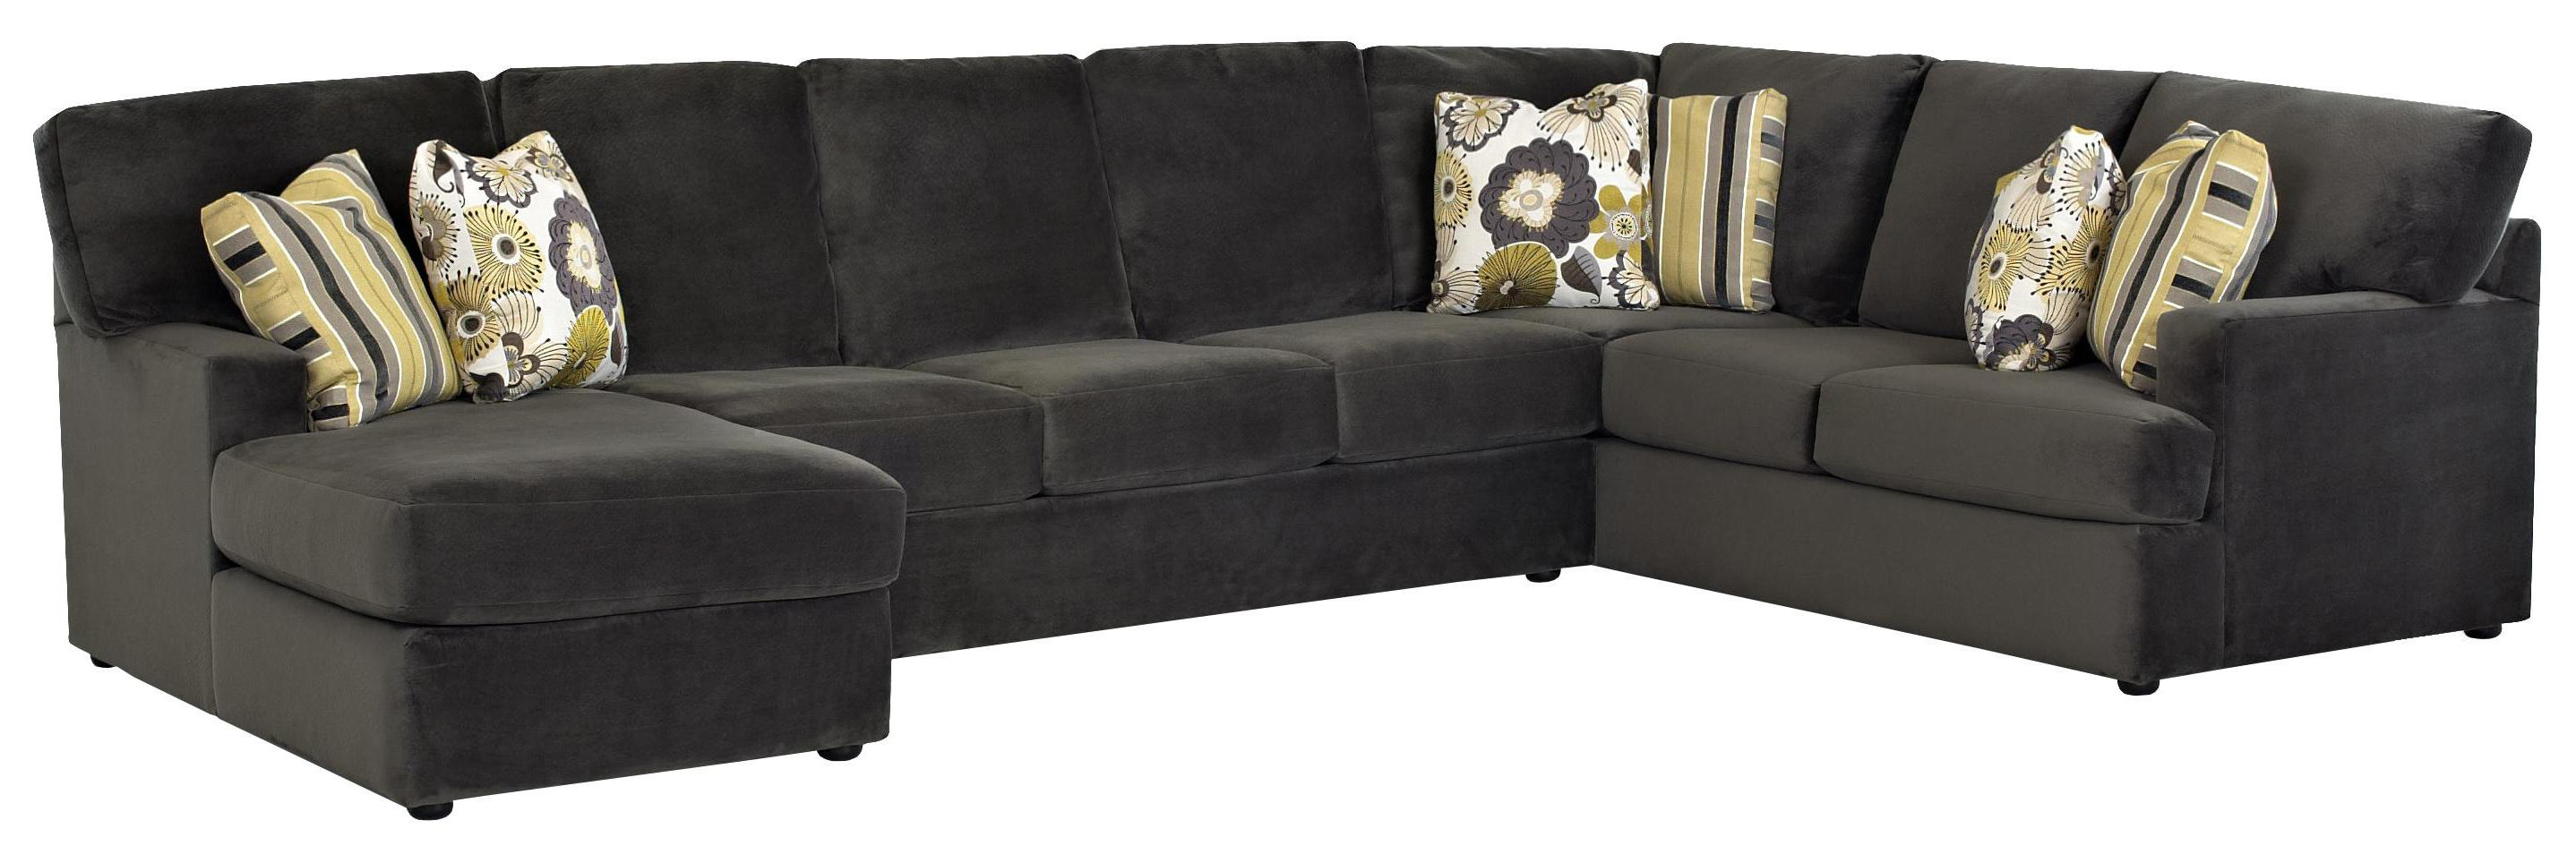 Sectional Sofa with Left Side Chaise by Klaussner